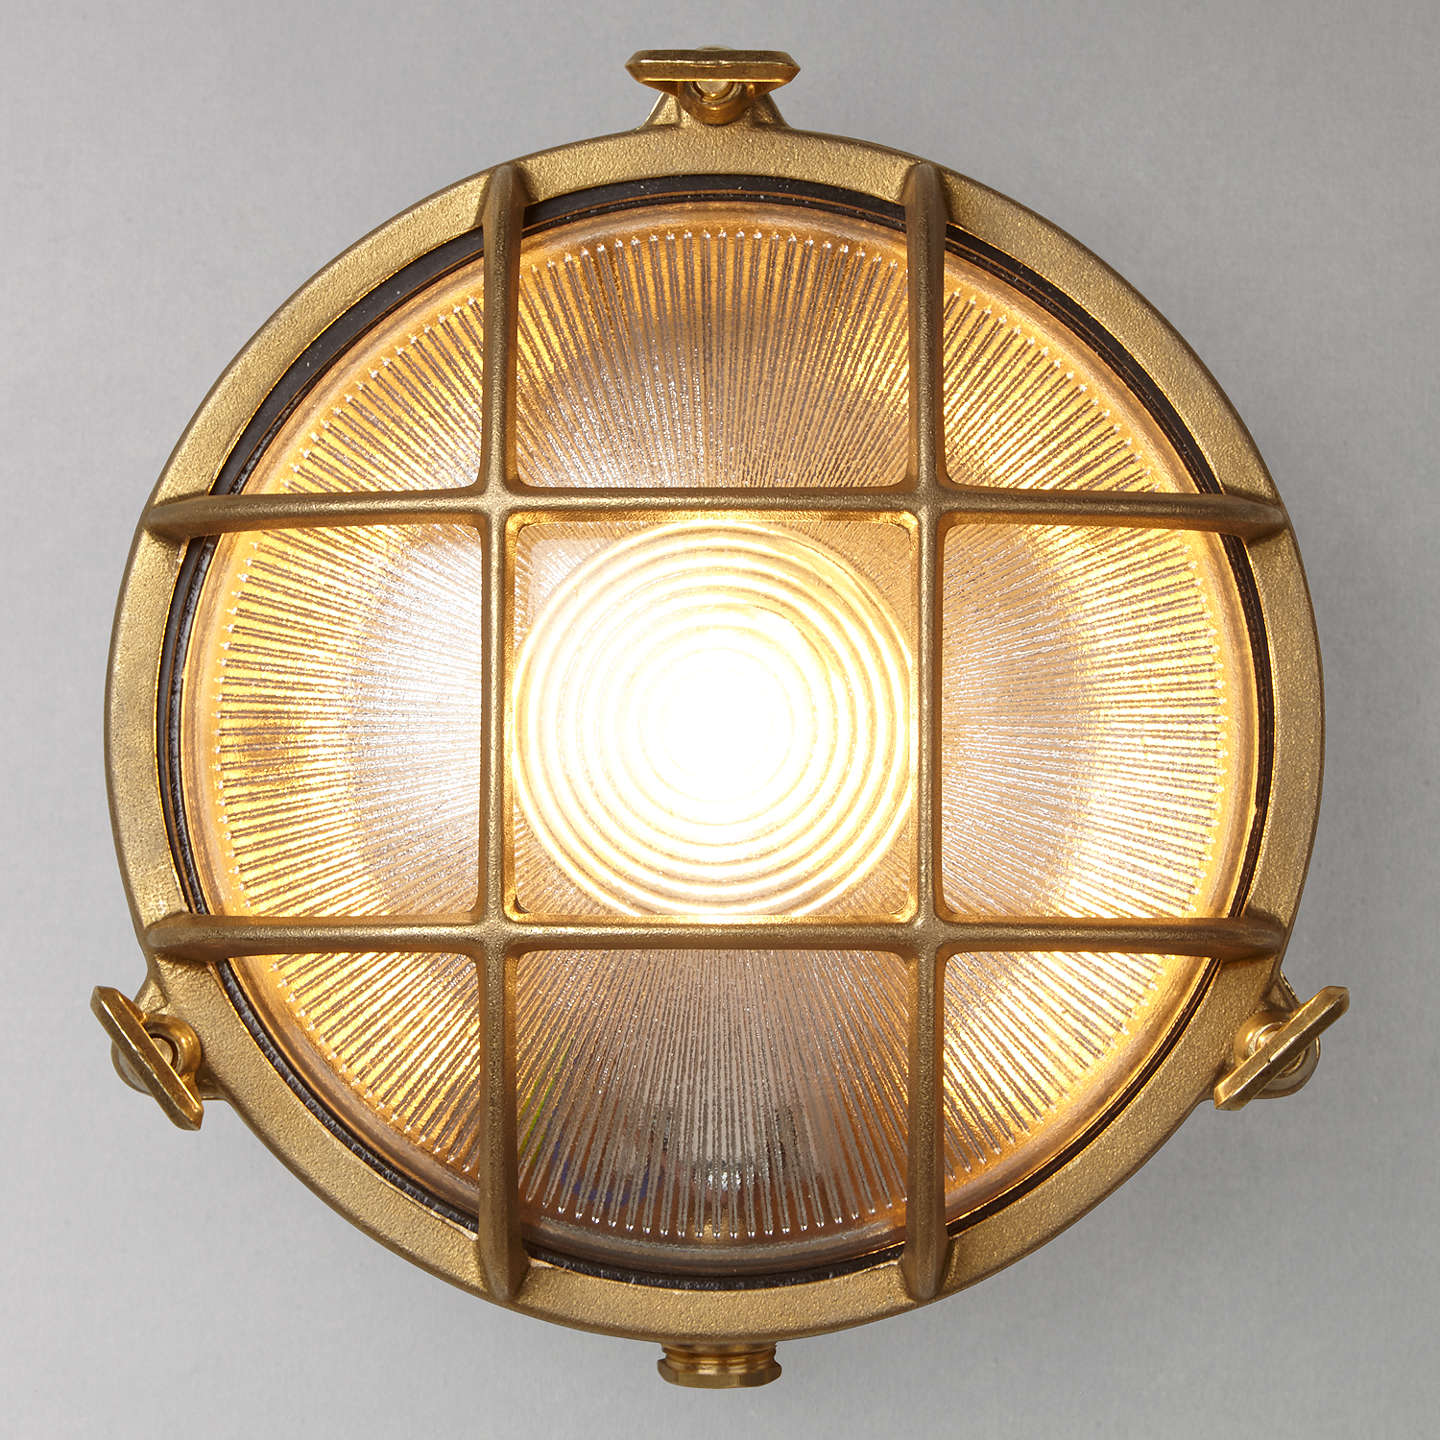 Nordlux bulkhead round outdoor light at john lewis buynordlux bulkhead round outdoor light solid brass online at johnlewis mozeypictures Image collections